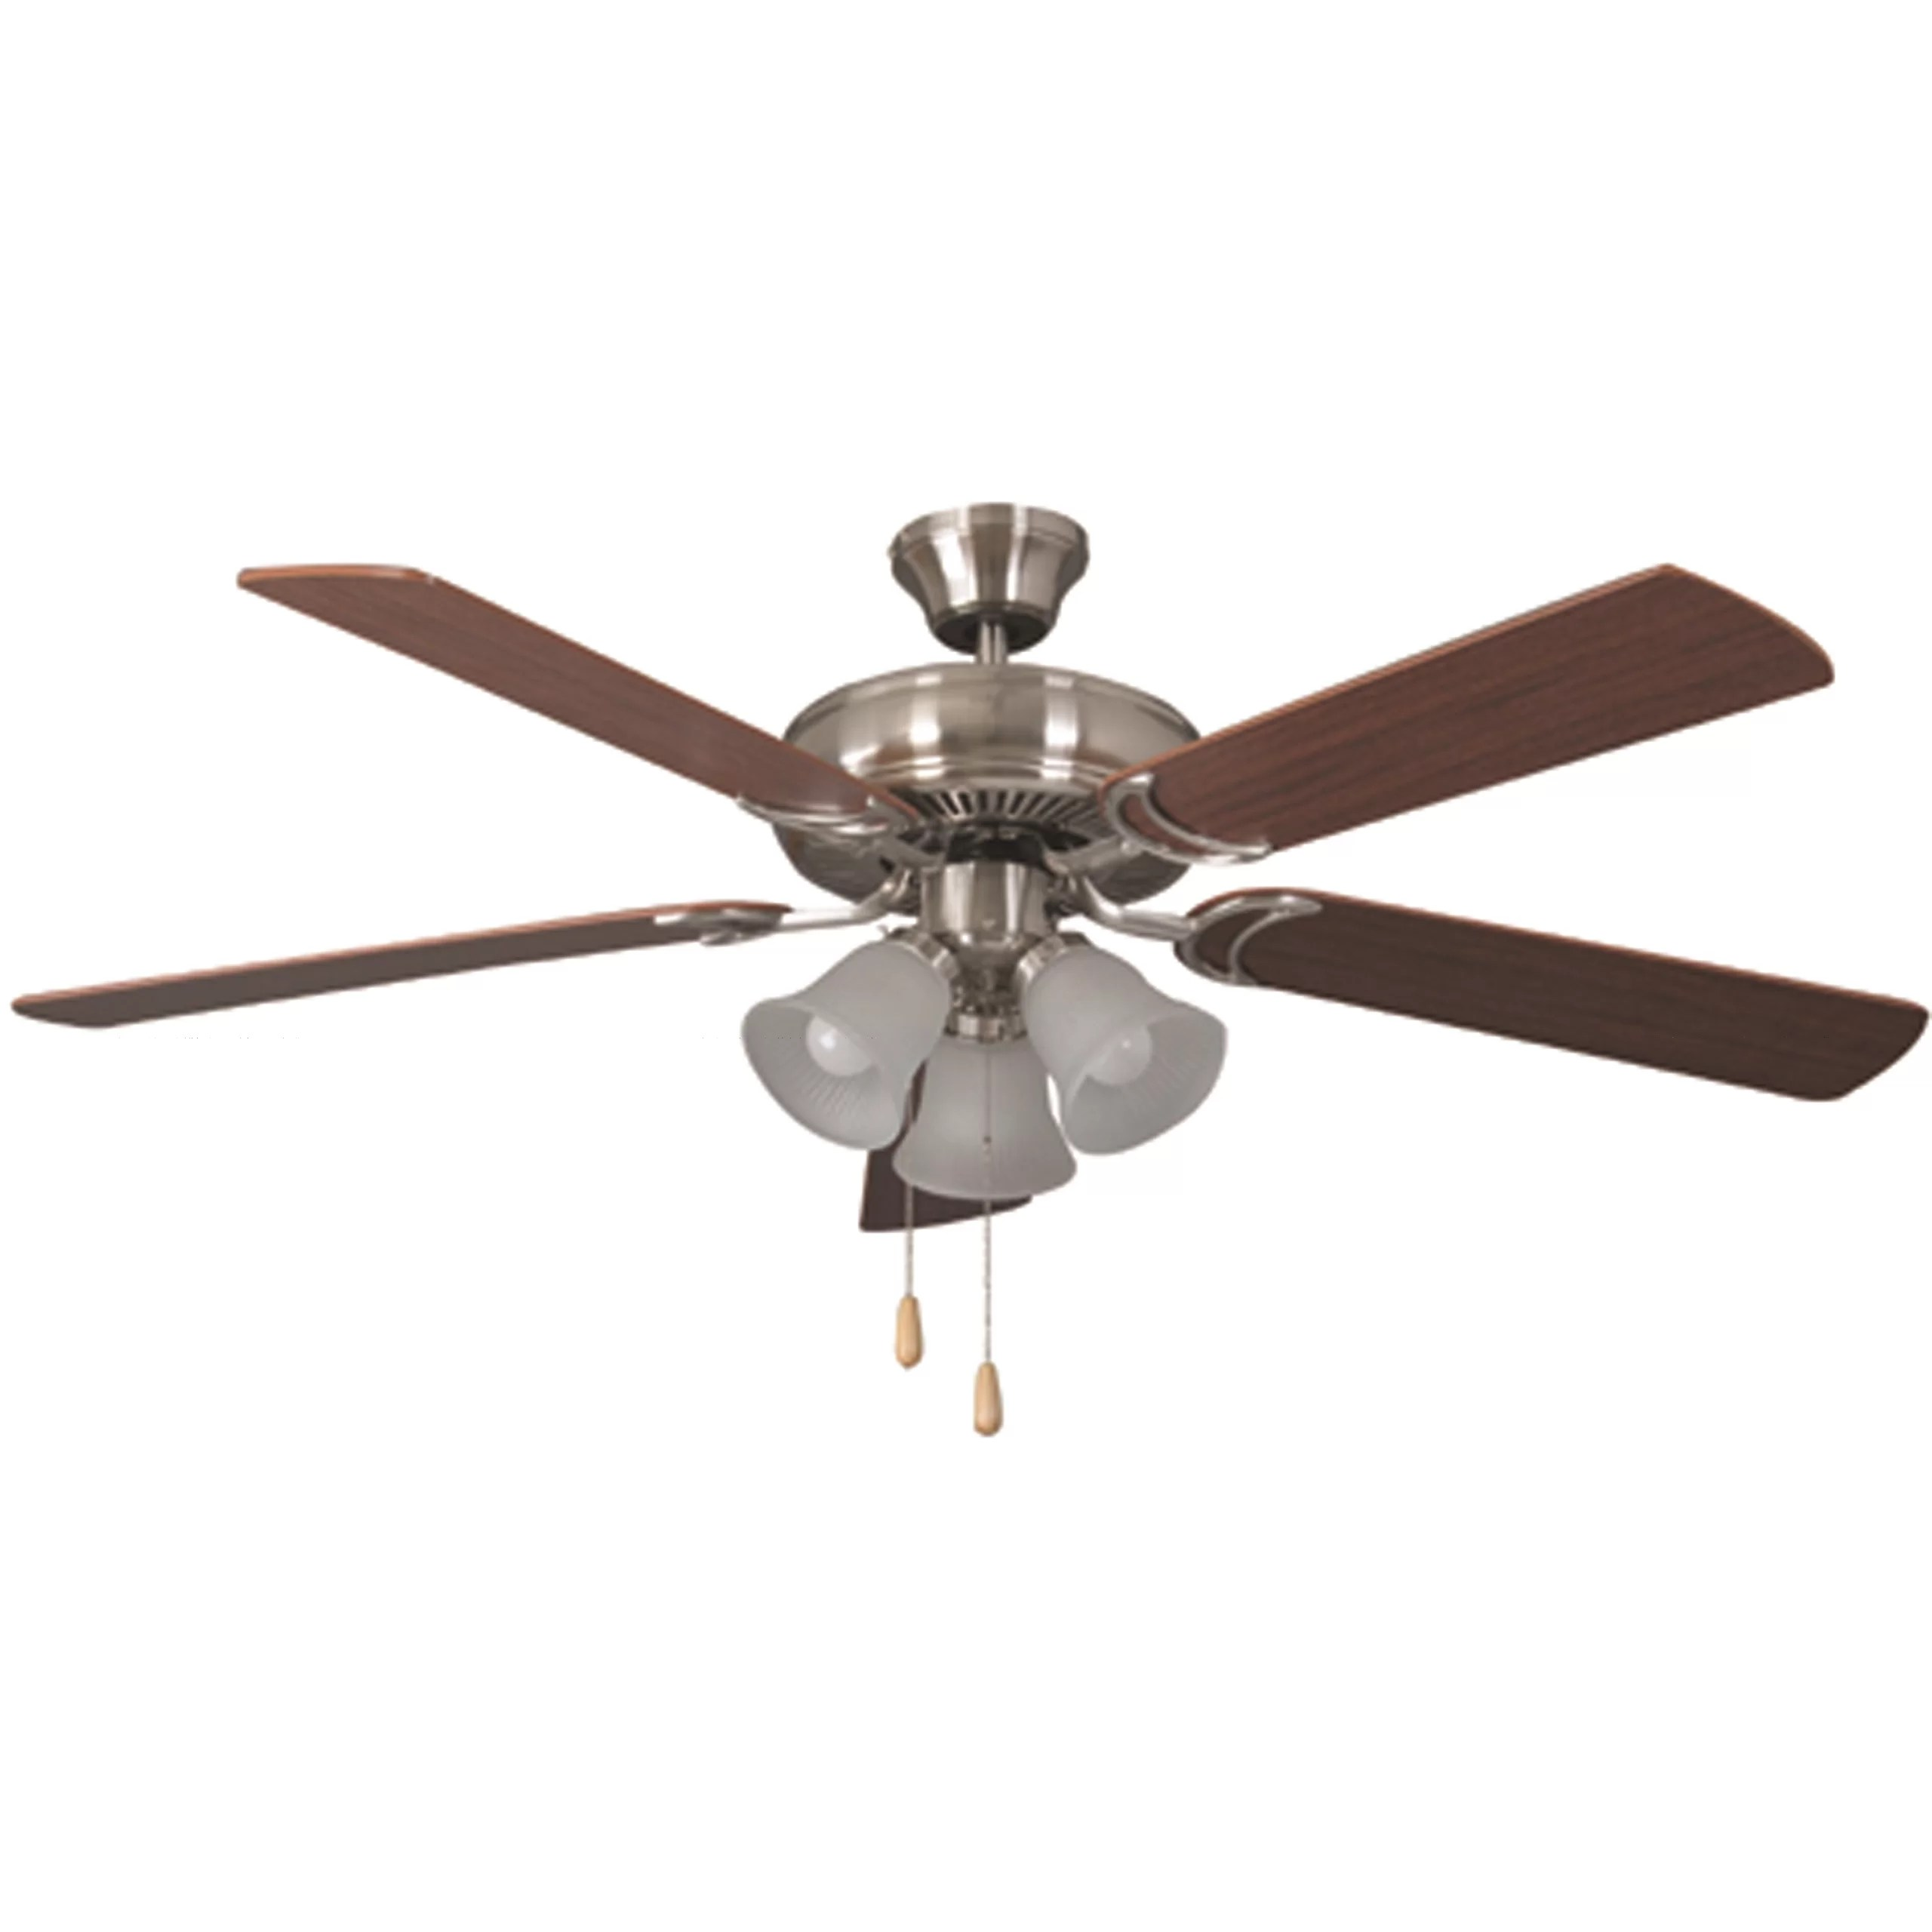 Double Paddle Ceiling Fans Bala Bala Dual Mount 5 Blade Ceiling Fan And Reviews